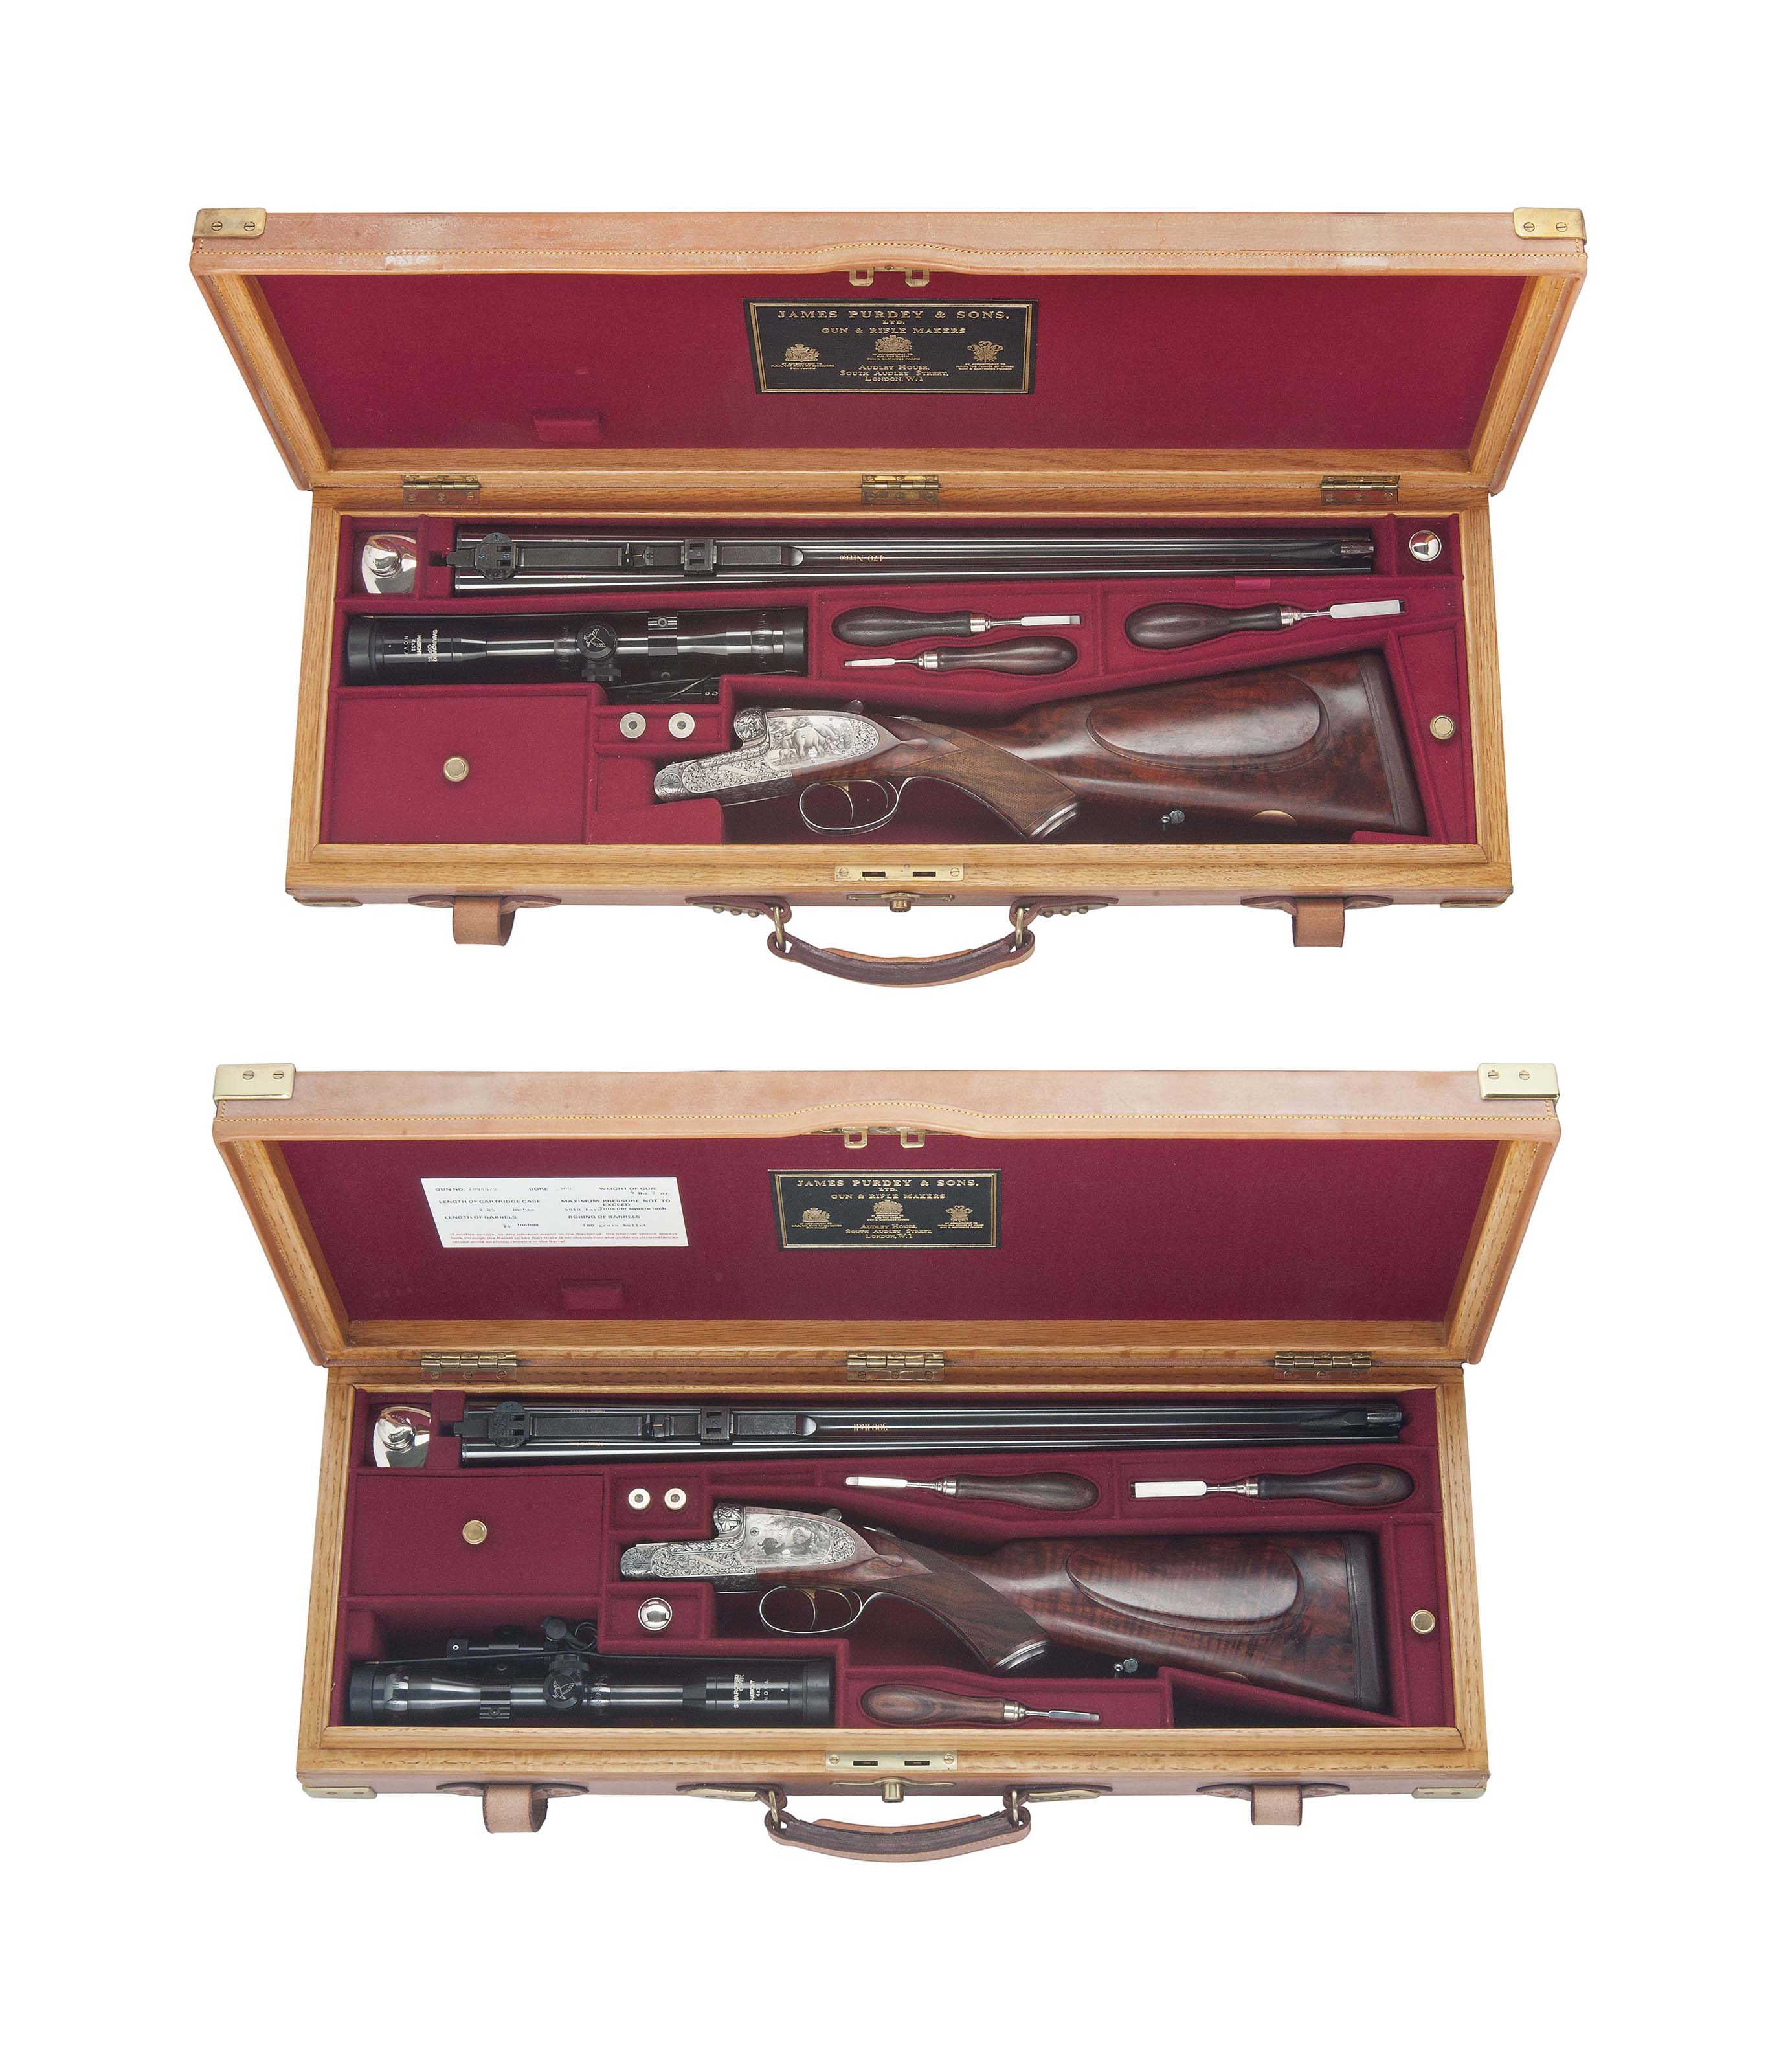 A MAGNIFICENT NEW & UNUSED PAIR OF COGGAN ENGRAVED 'SPECIAL LARGE SCROLL' SELF-OPENING SIDELOCK EJECTOR DOUBLE RIFLES RESPECTIVELY CHAMBERED FOR .470 (NITRO EXPRESS) AND .300 (H & H MAGNUM)